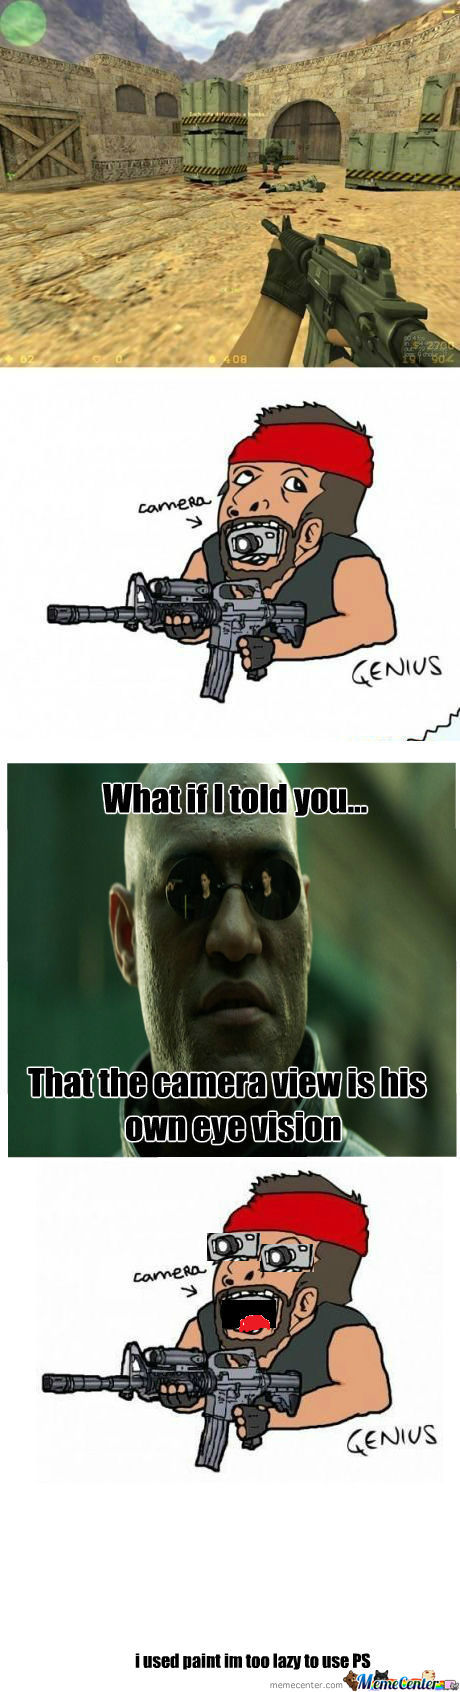 [RMX] [RMX] First Person Shooter Genious